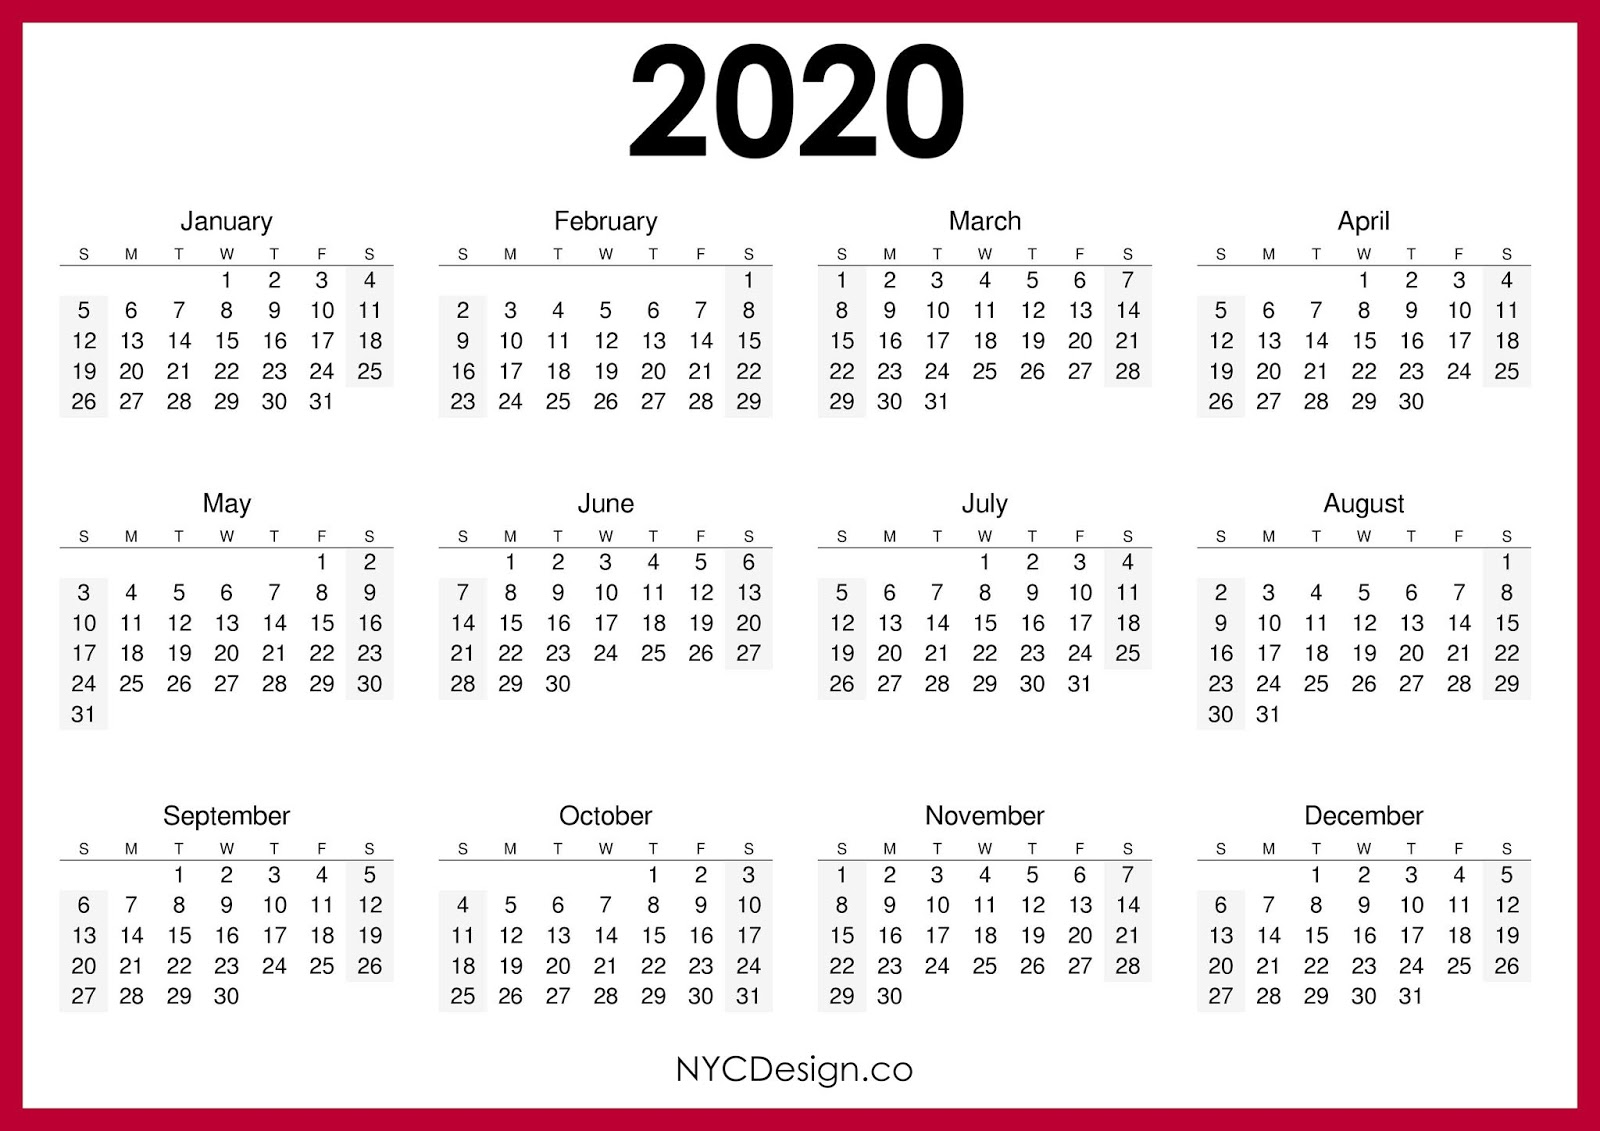 New York Calendar 2020 New York Web Design Studio, New York, NY: 2020 Calendar